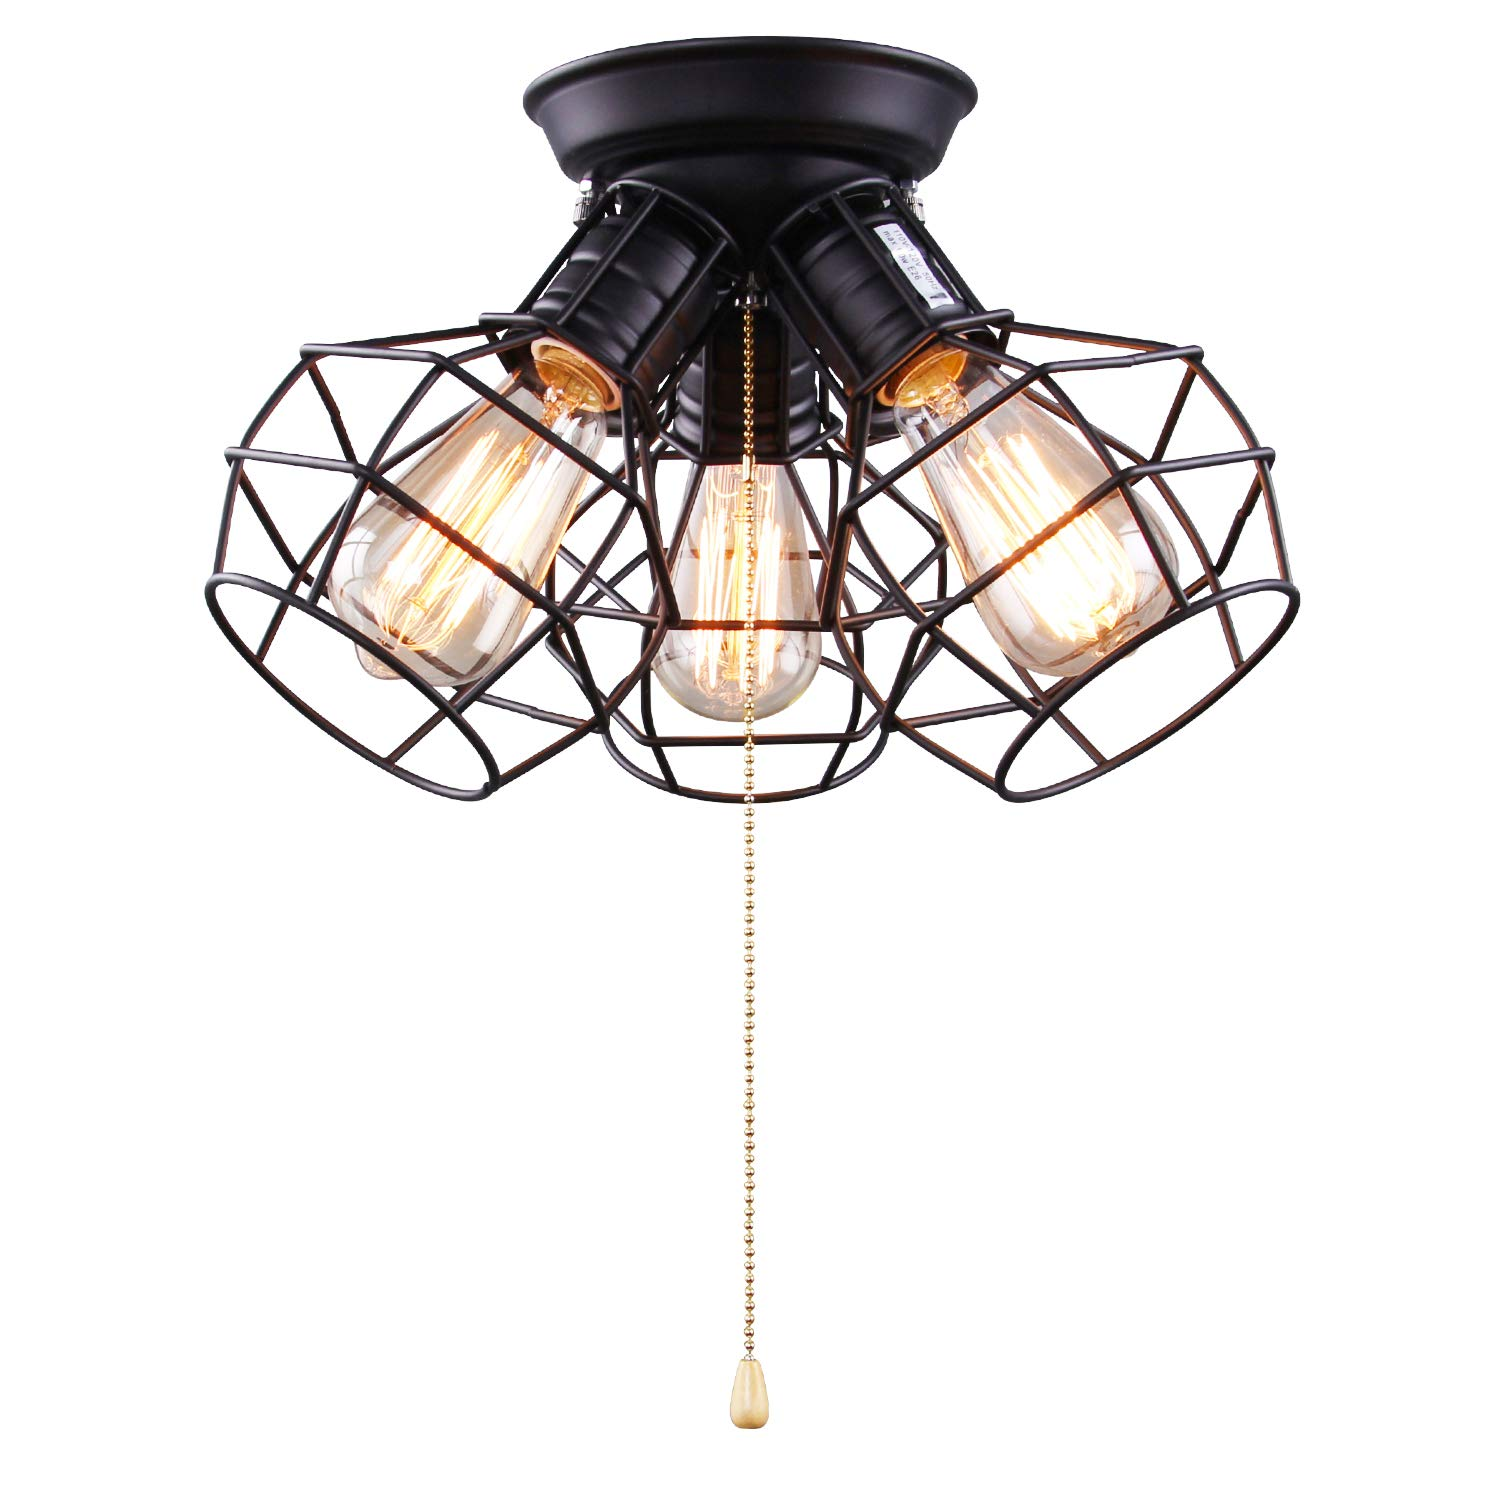 Laluz 3 light wire cage ceiling lighting with pull string industry close to ceiling light fixture